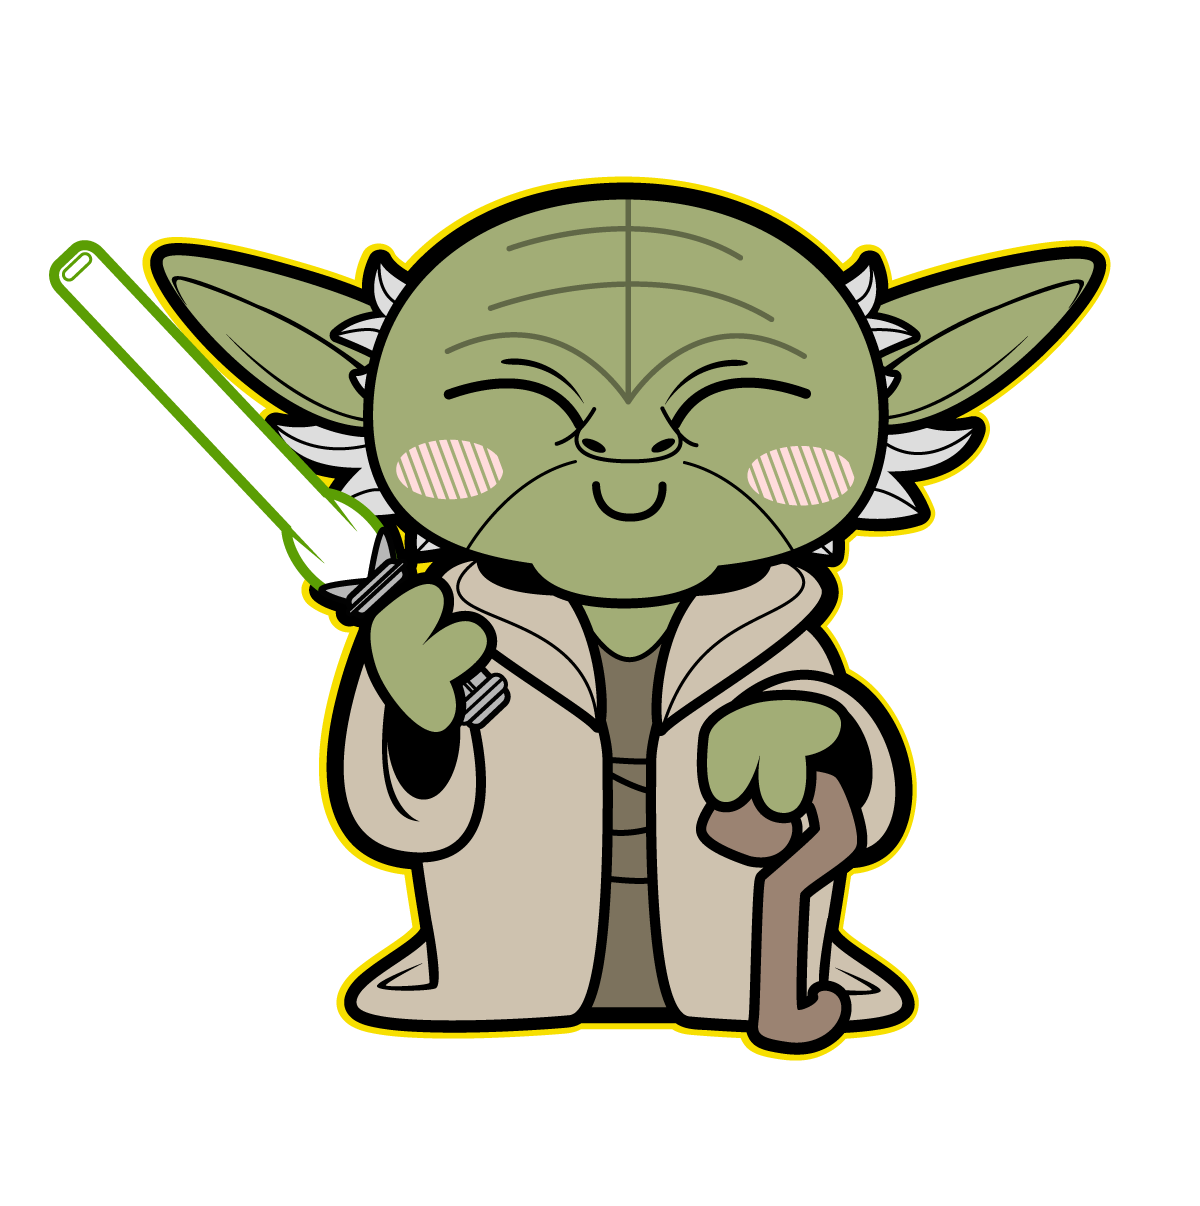 yoda | TieFighters | Star War - Yoda Clipart